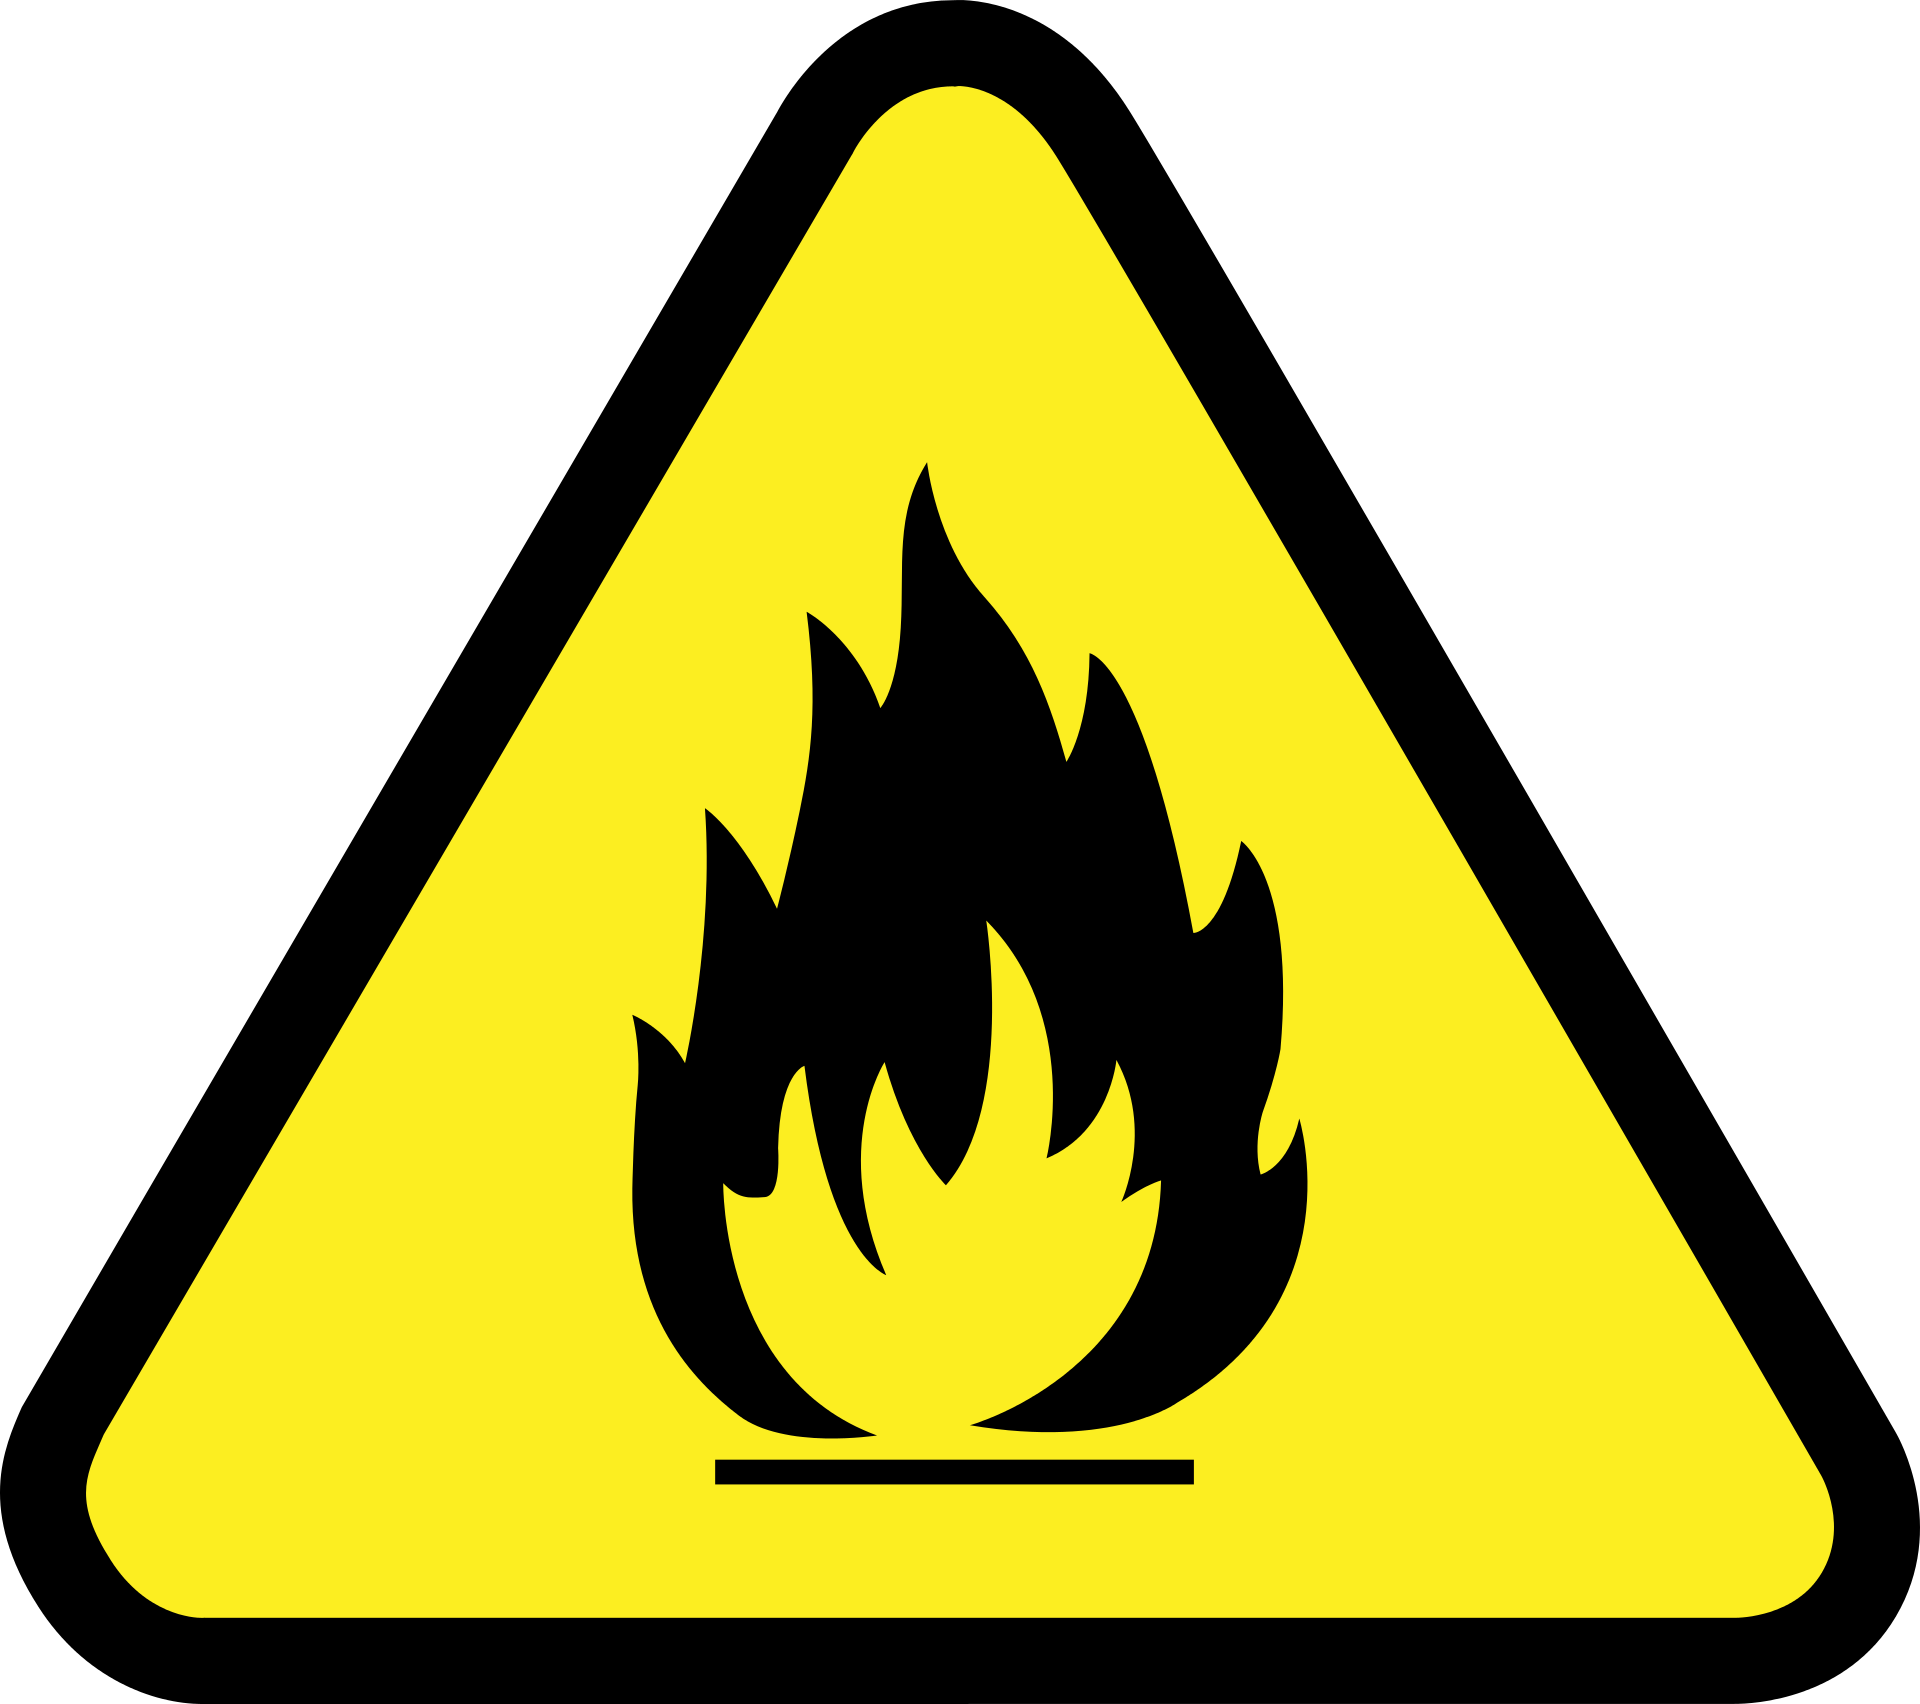 caution-1491550 Fire detection